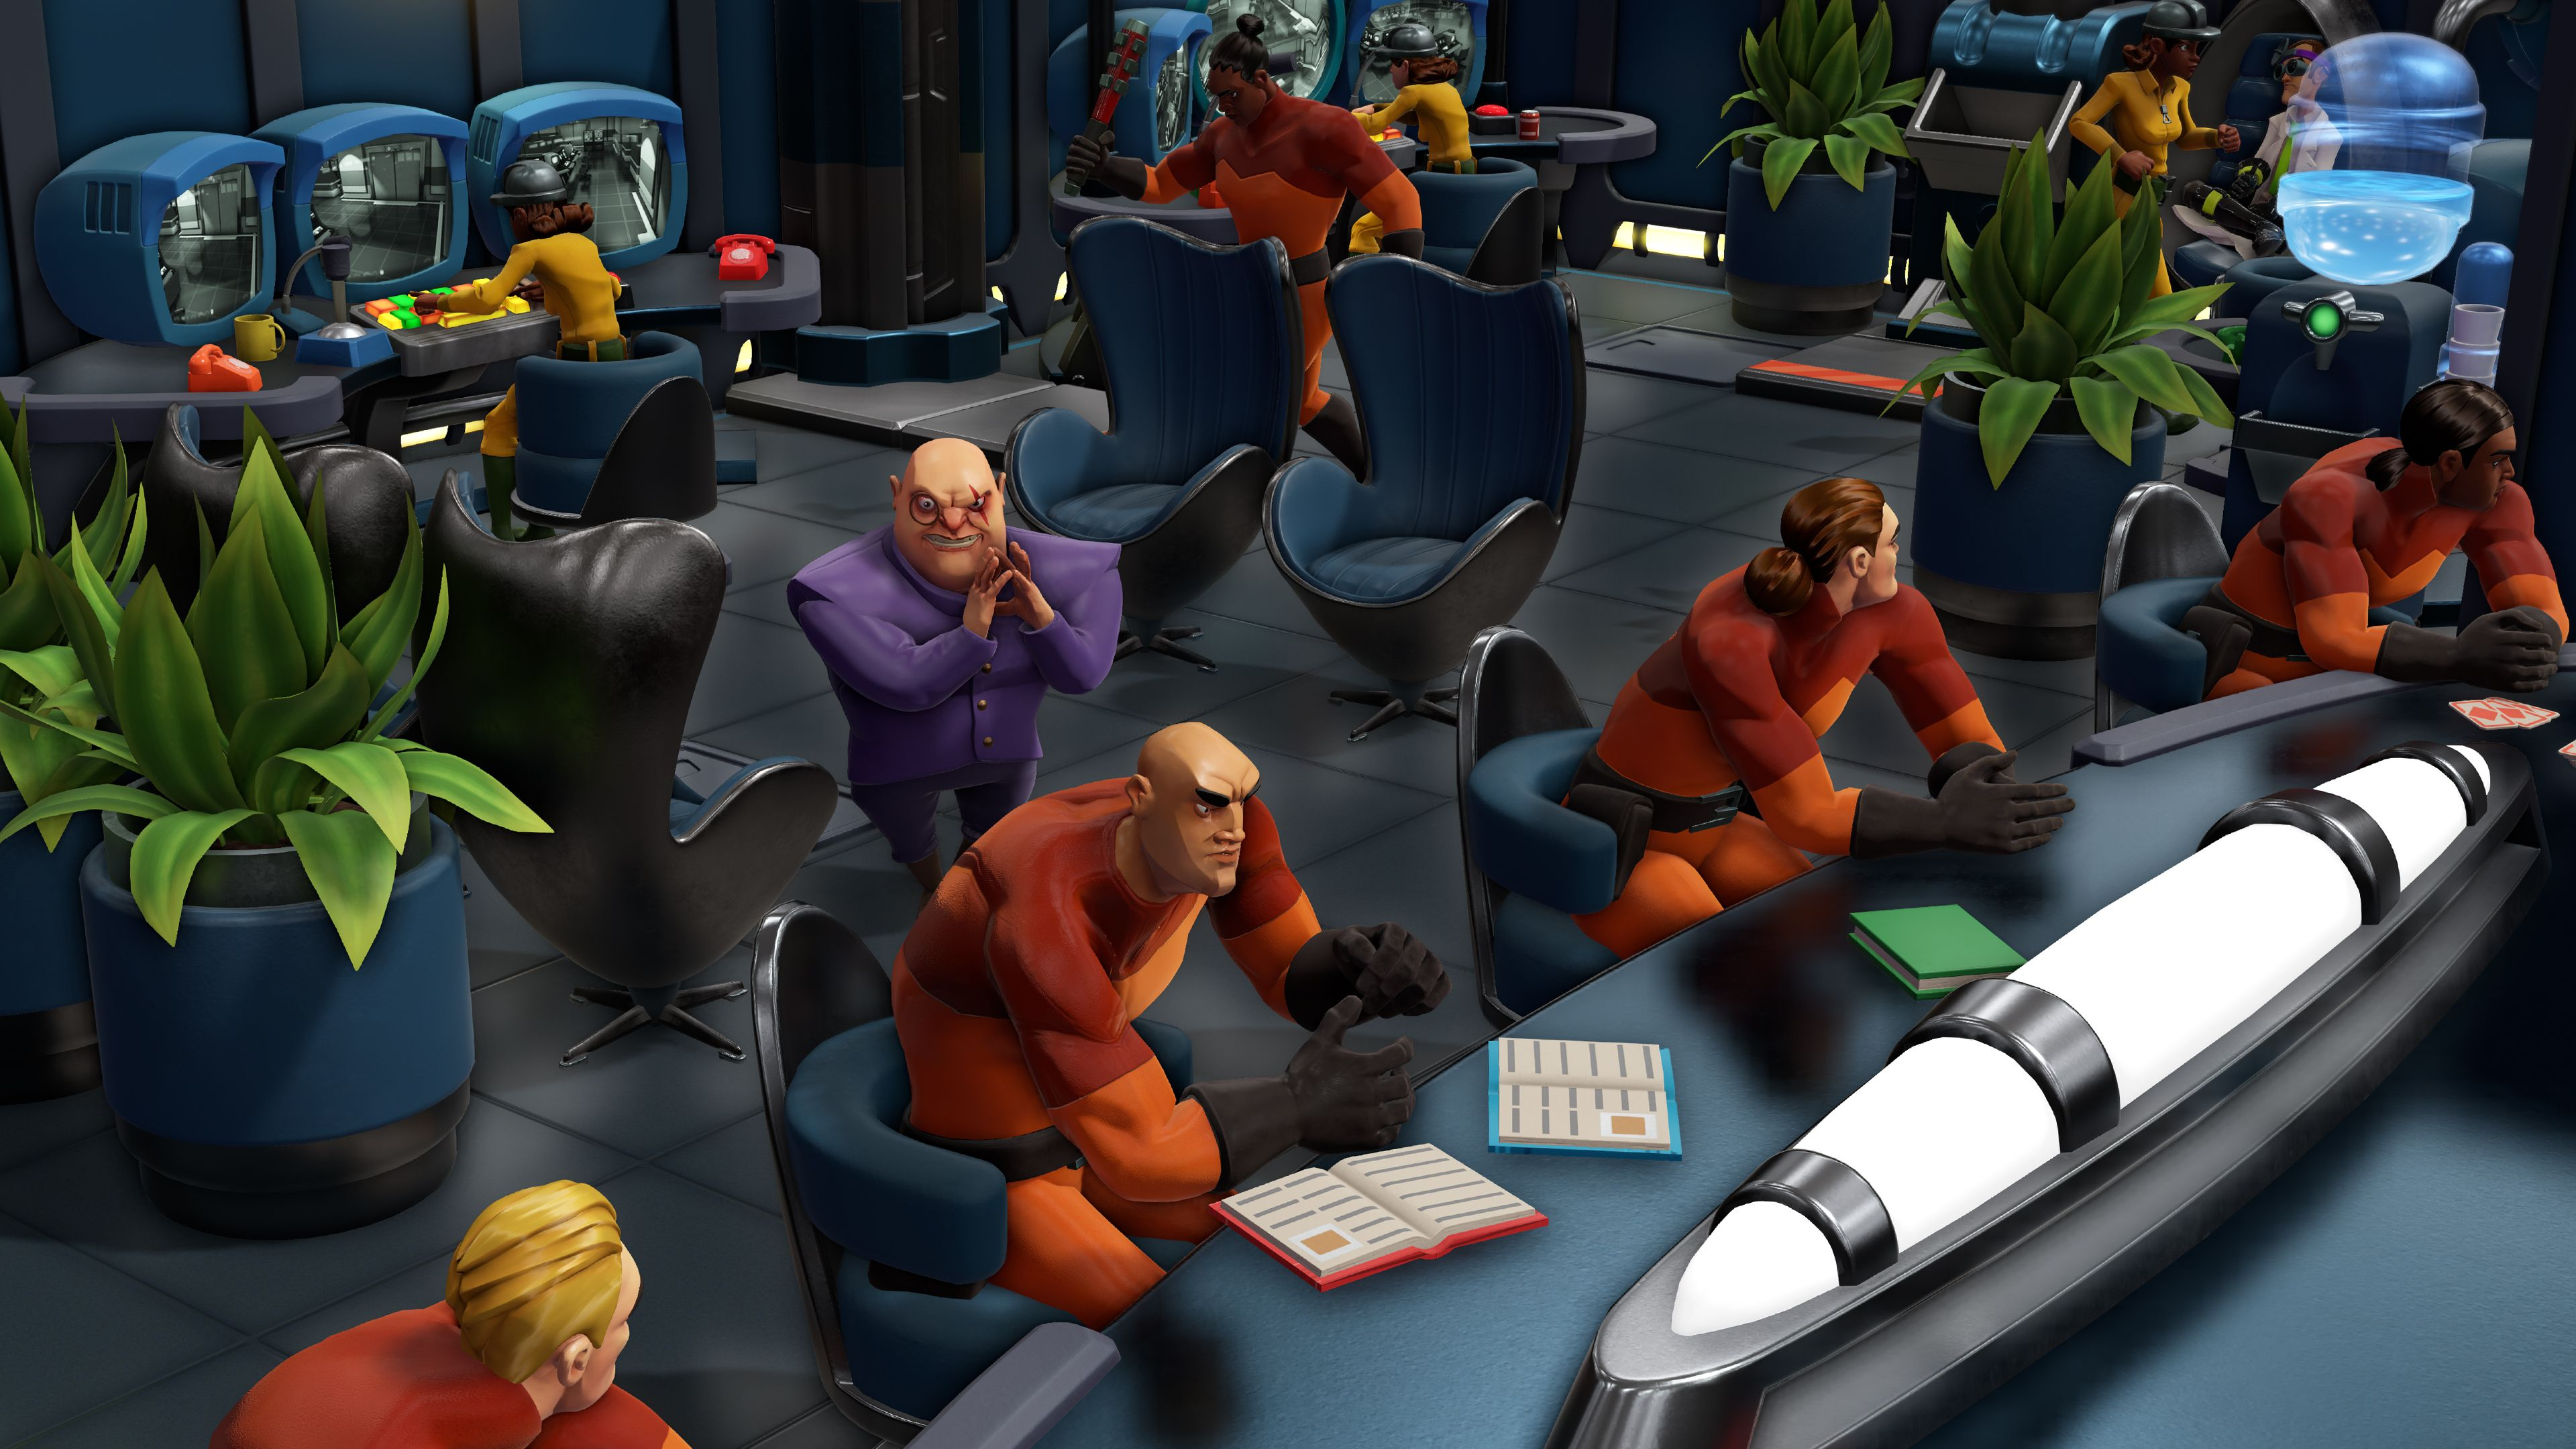 Evil Genius 2 trailer explains how to achieve world domination, free and paid post-launch content confirmed